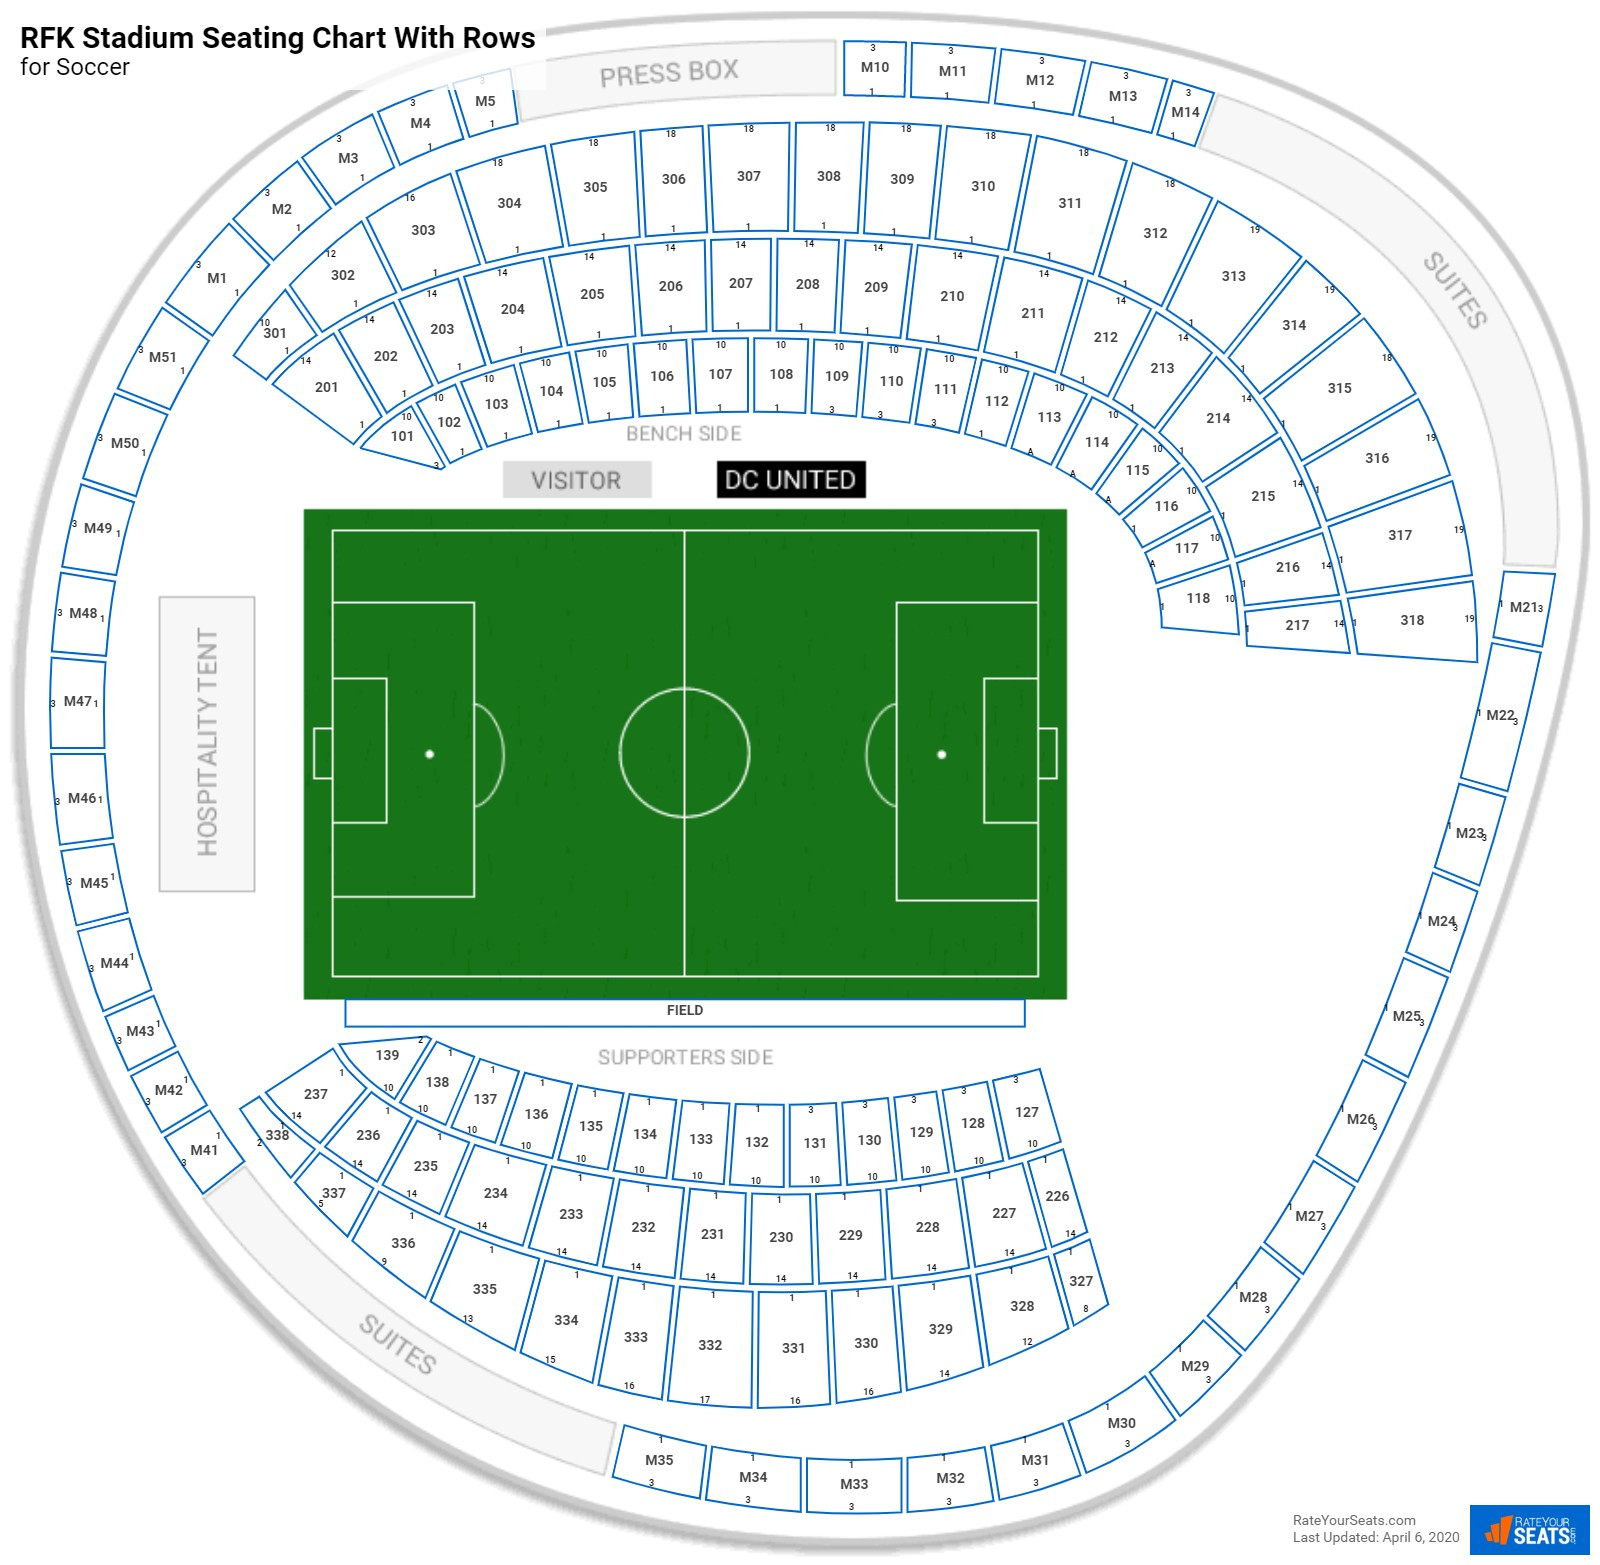 RFK Stadium seating chart with rows soccer